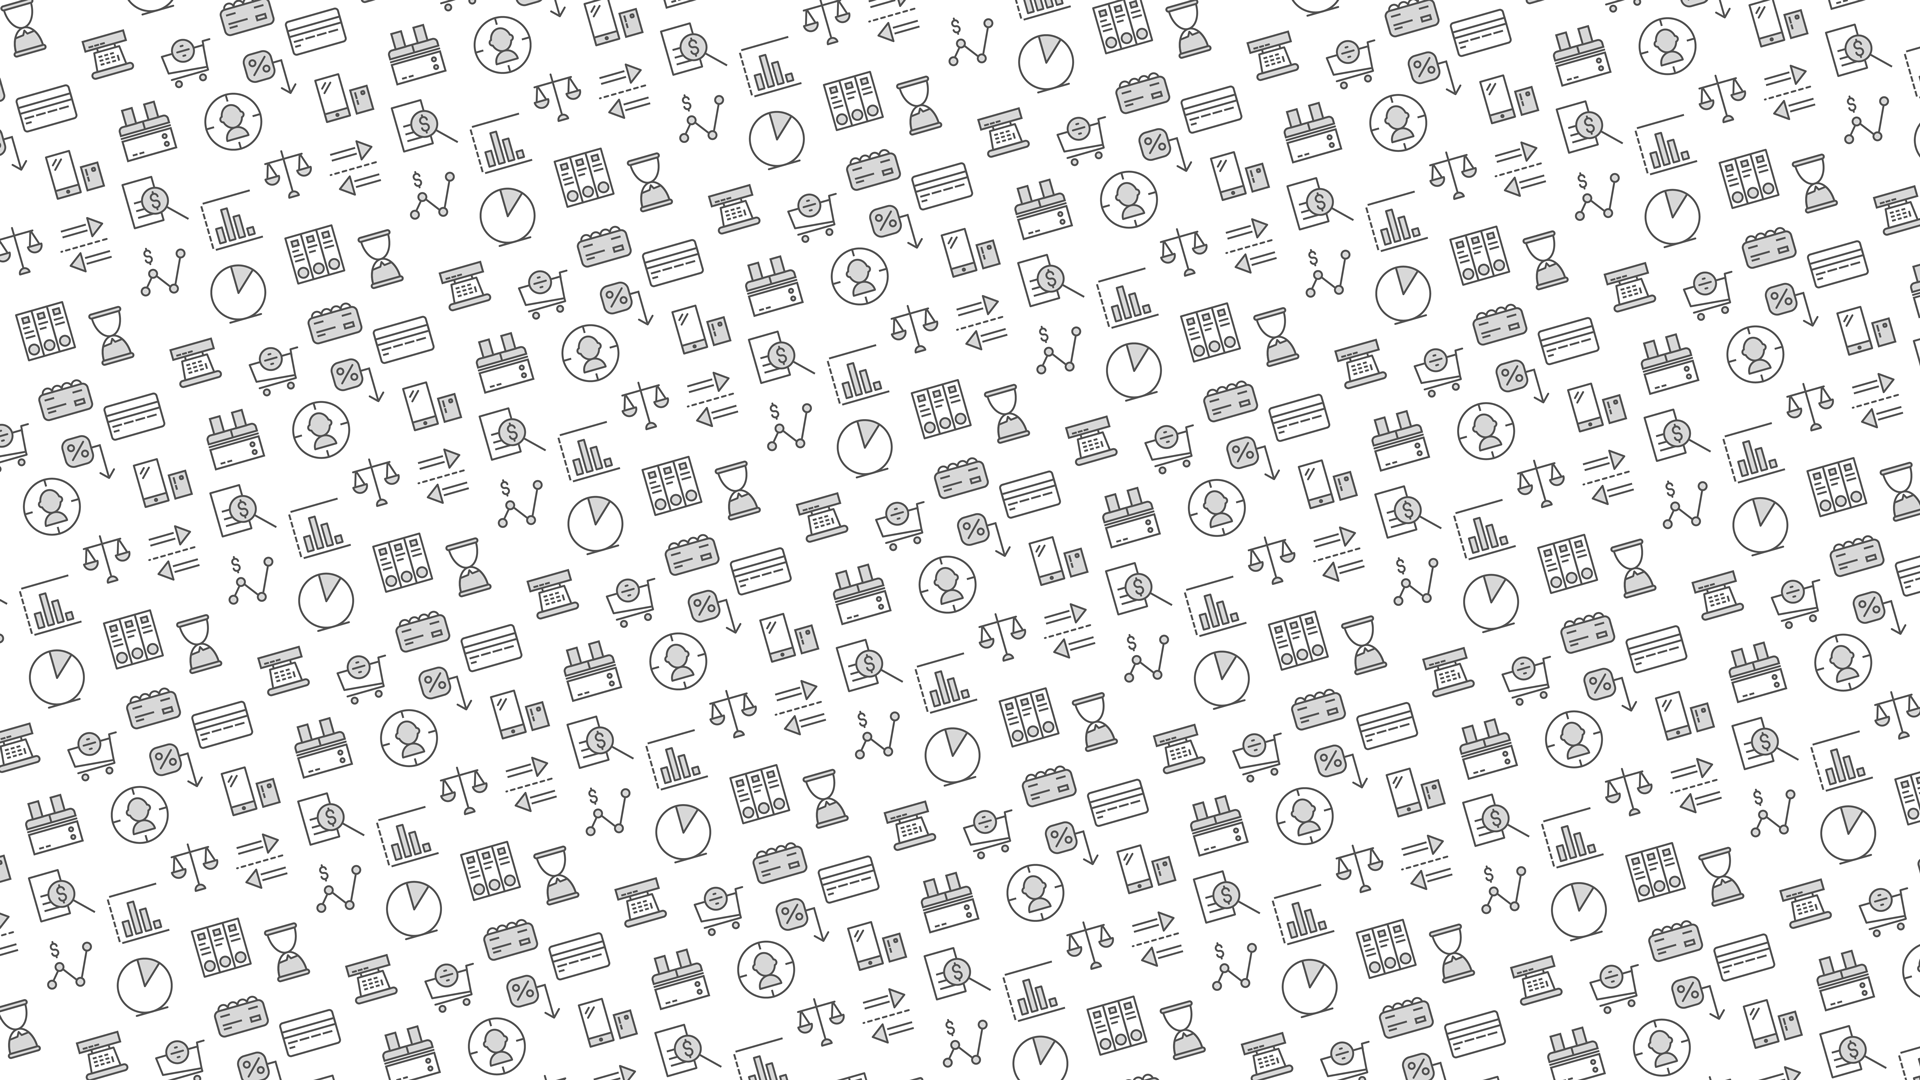 Index of /public/images/pattern-icons